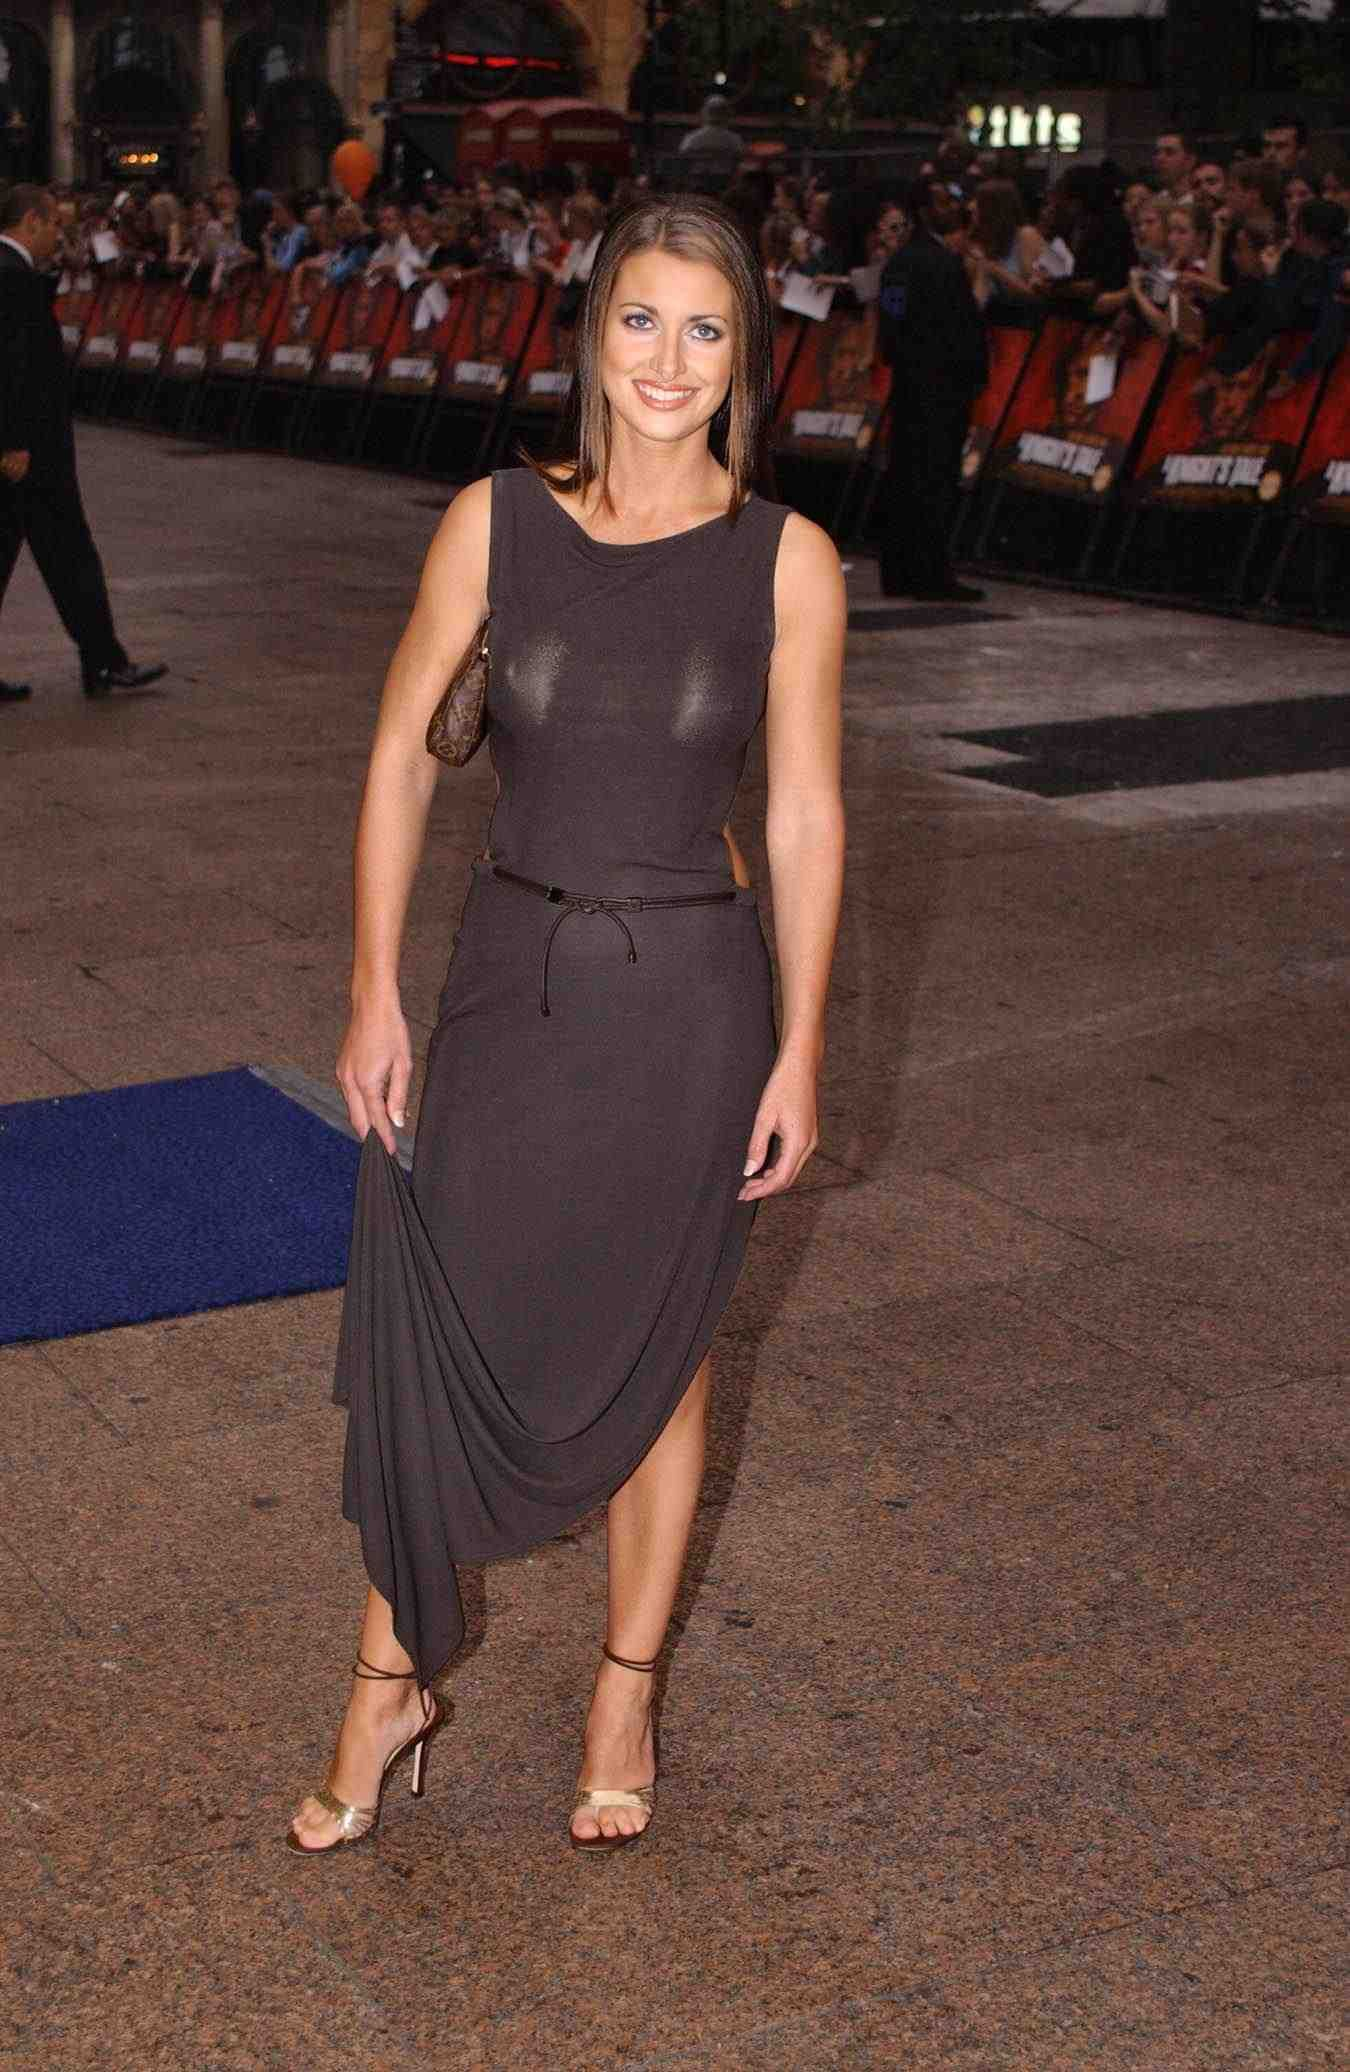 Celebrity Kirsty Gallacher naked (92 foto and video), Ass, Sideboobs, Instagram, legs 2006